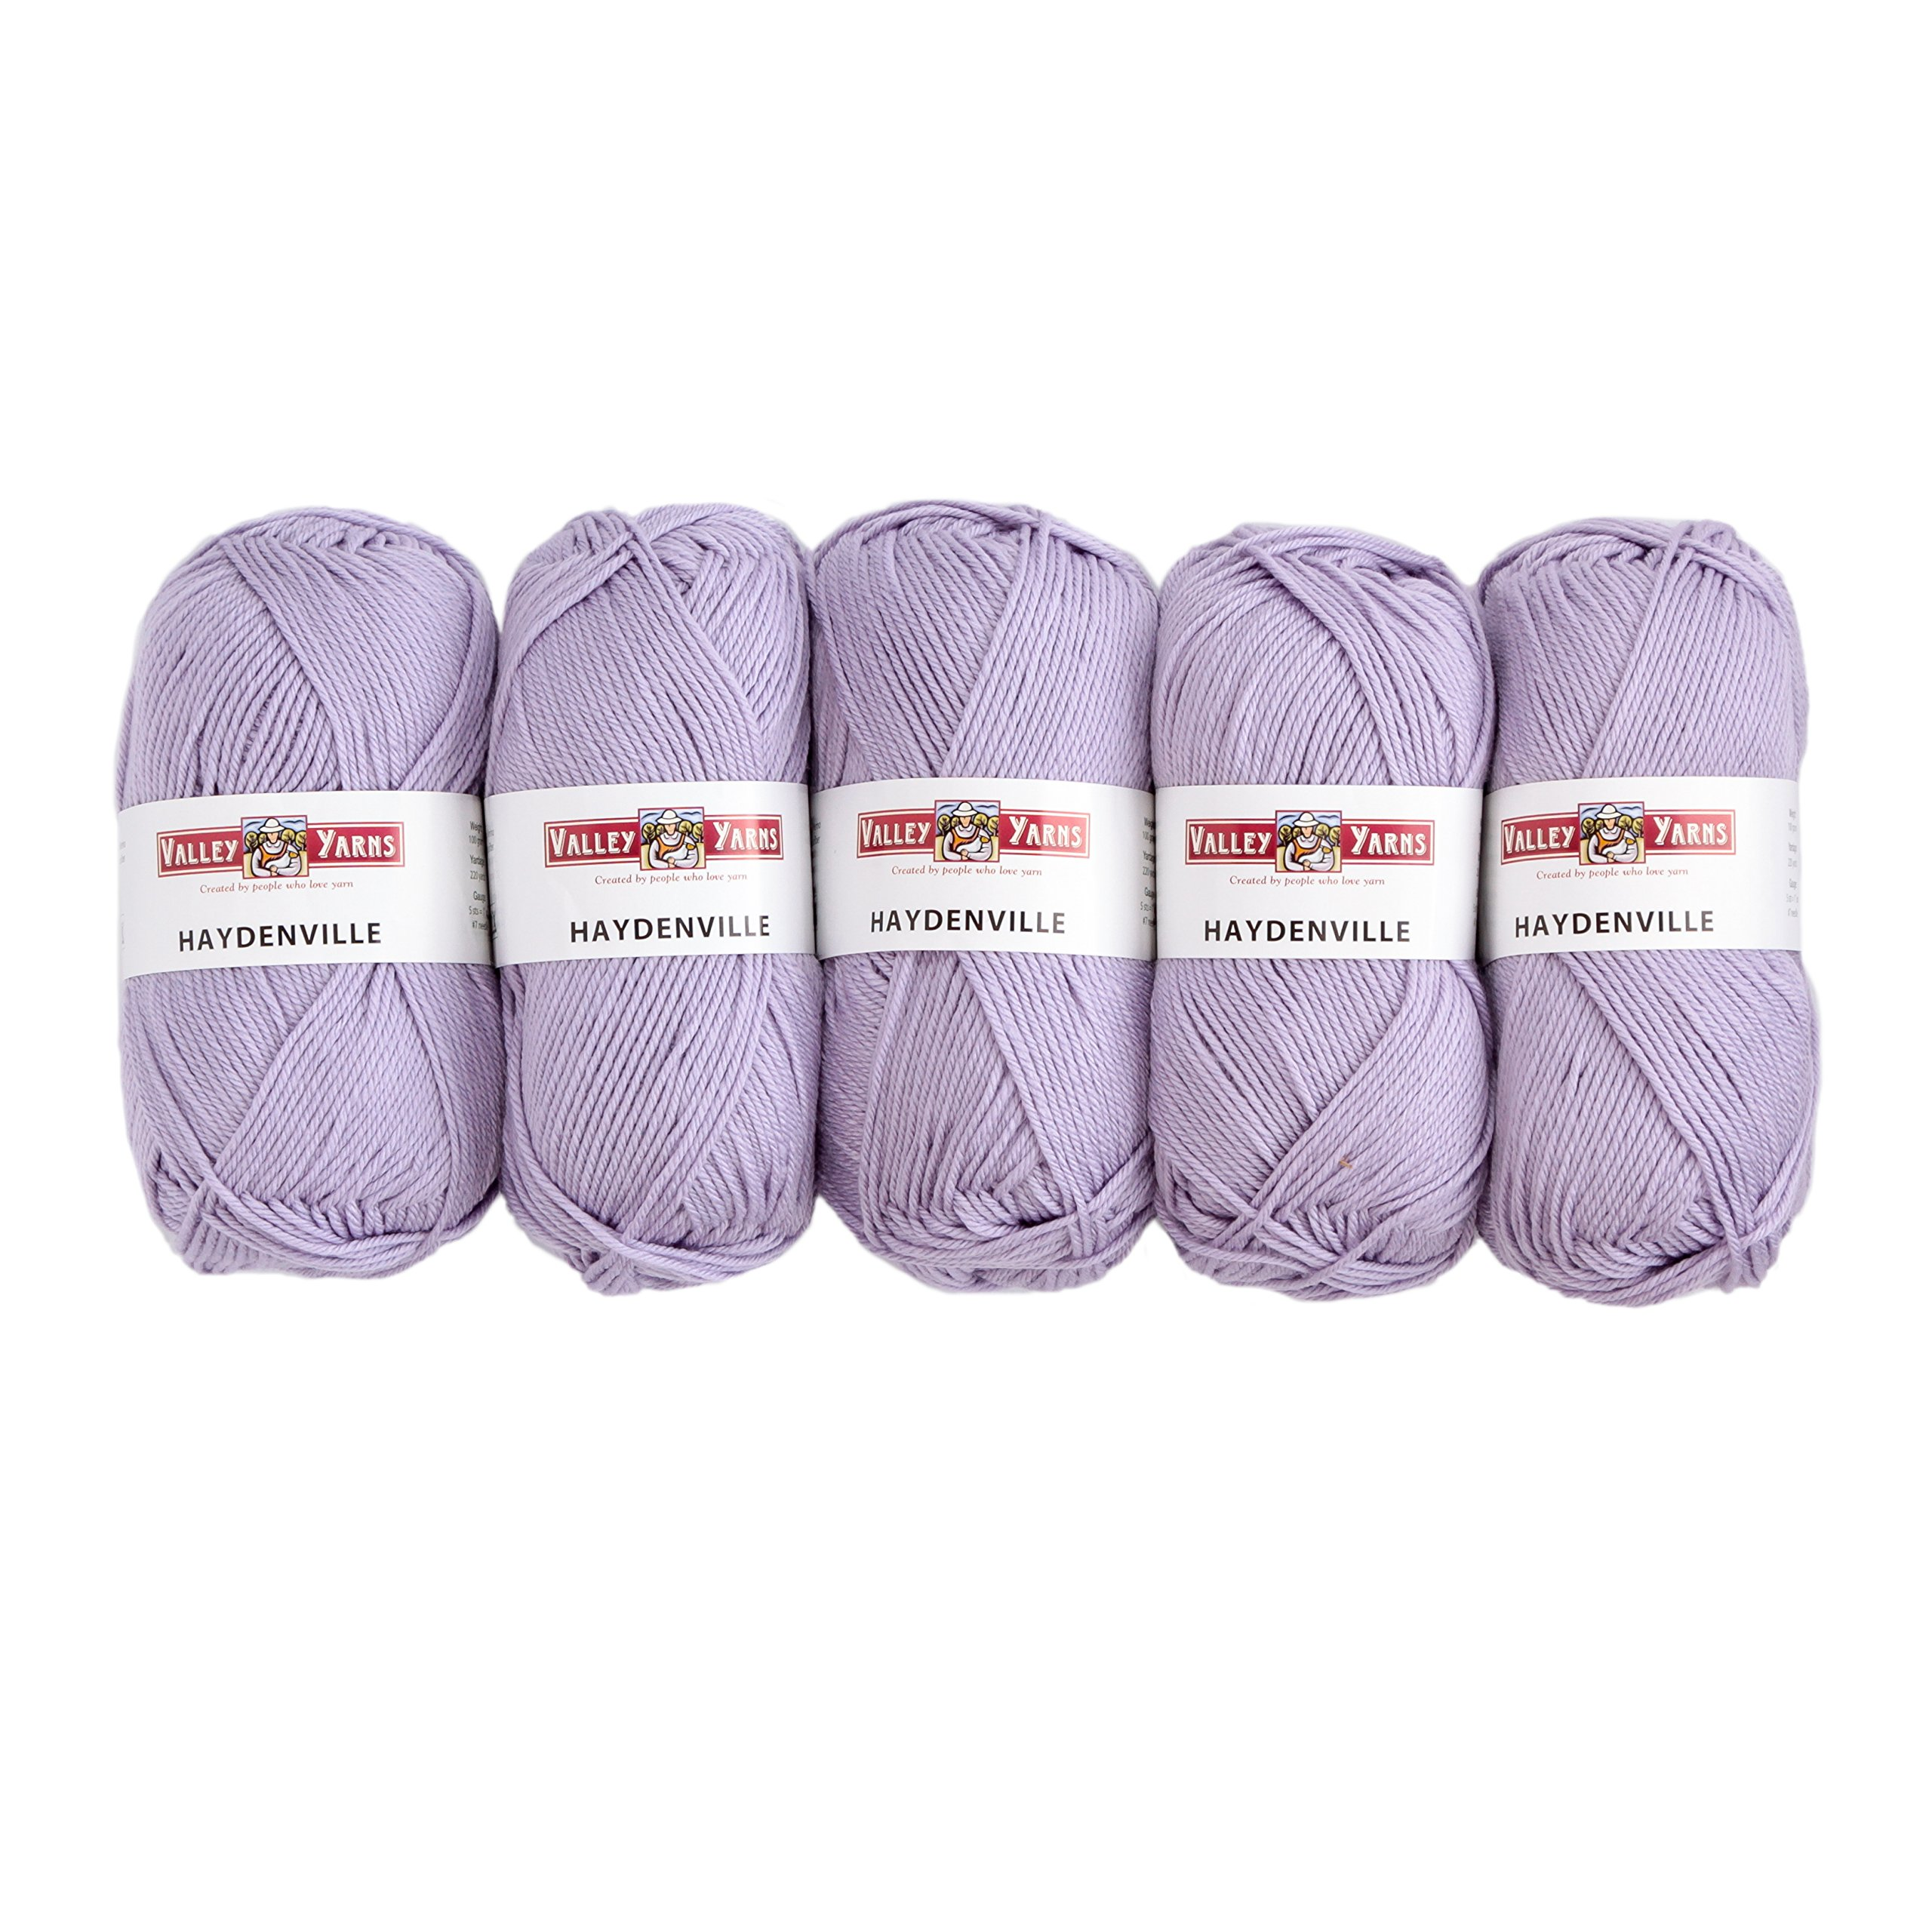 Valley Yarns Haydenville 5-Pack (Washable Worsted Weight Yarn, 60% Superwash Merino Wool/ 40% Acrylic Microfiber) - #24 Lavender